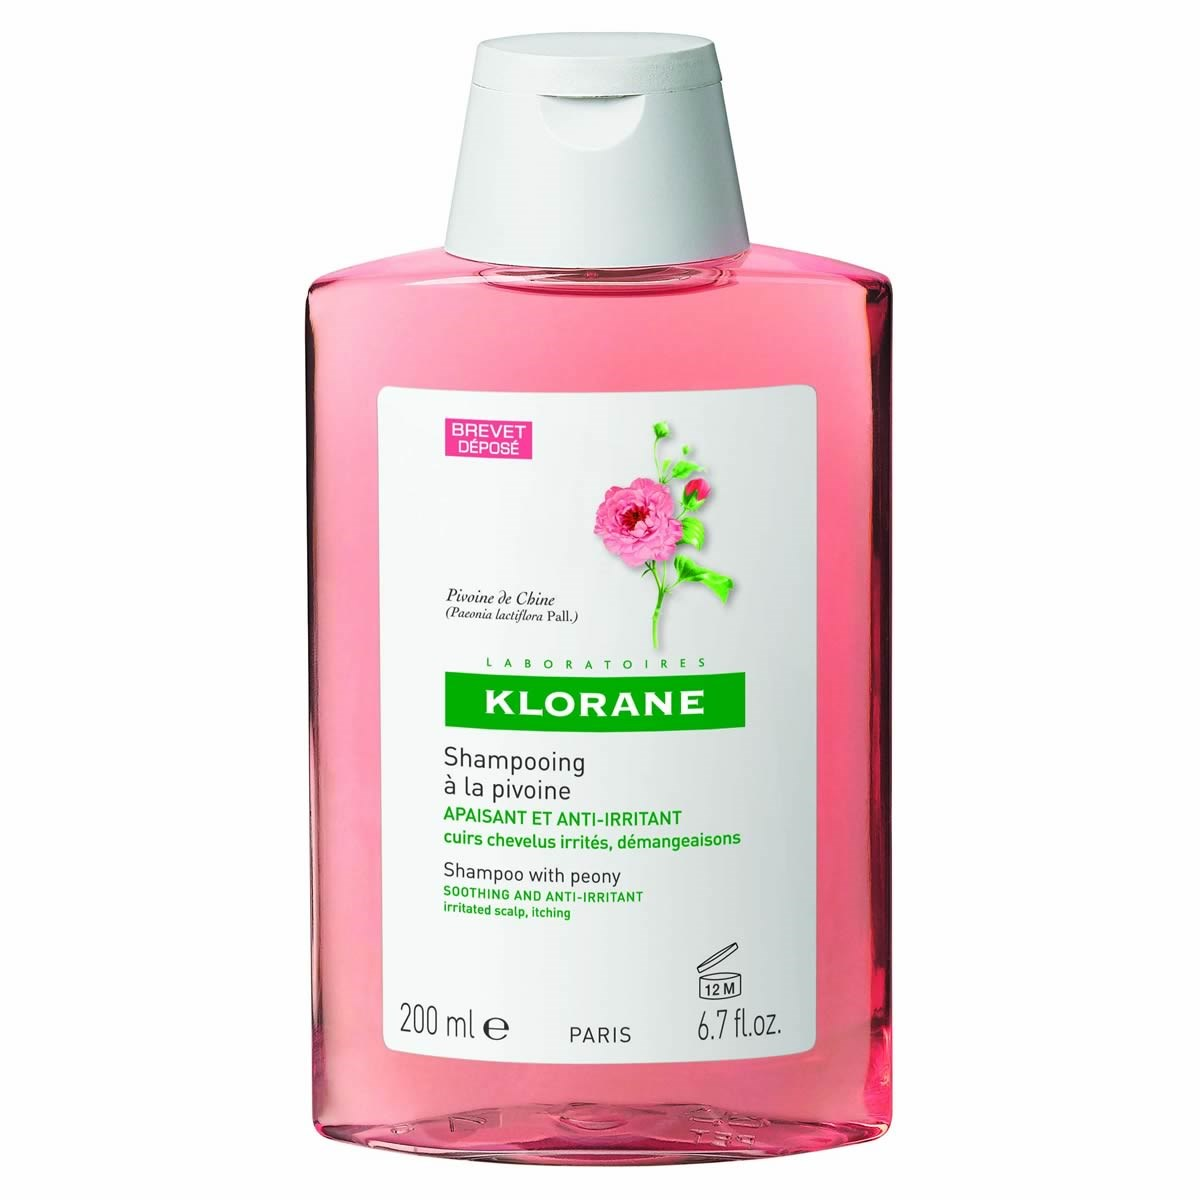 Klorane Soothing Shampoo With Peony